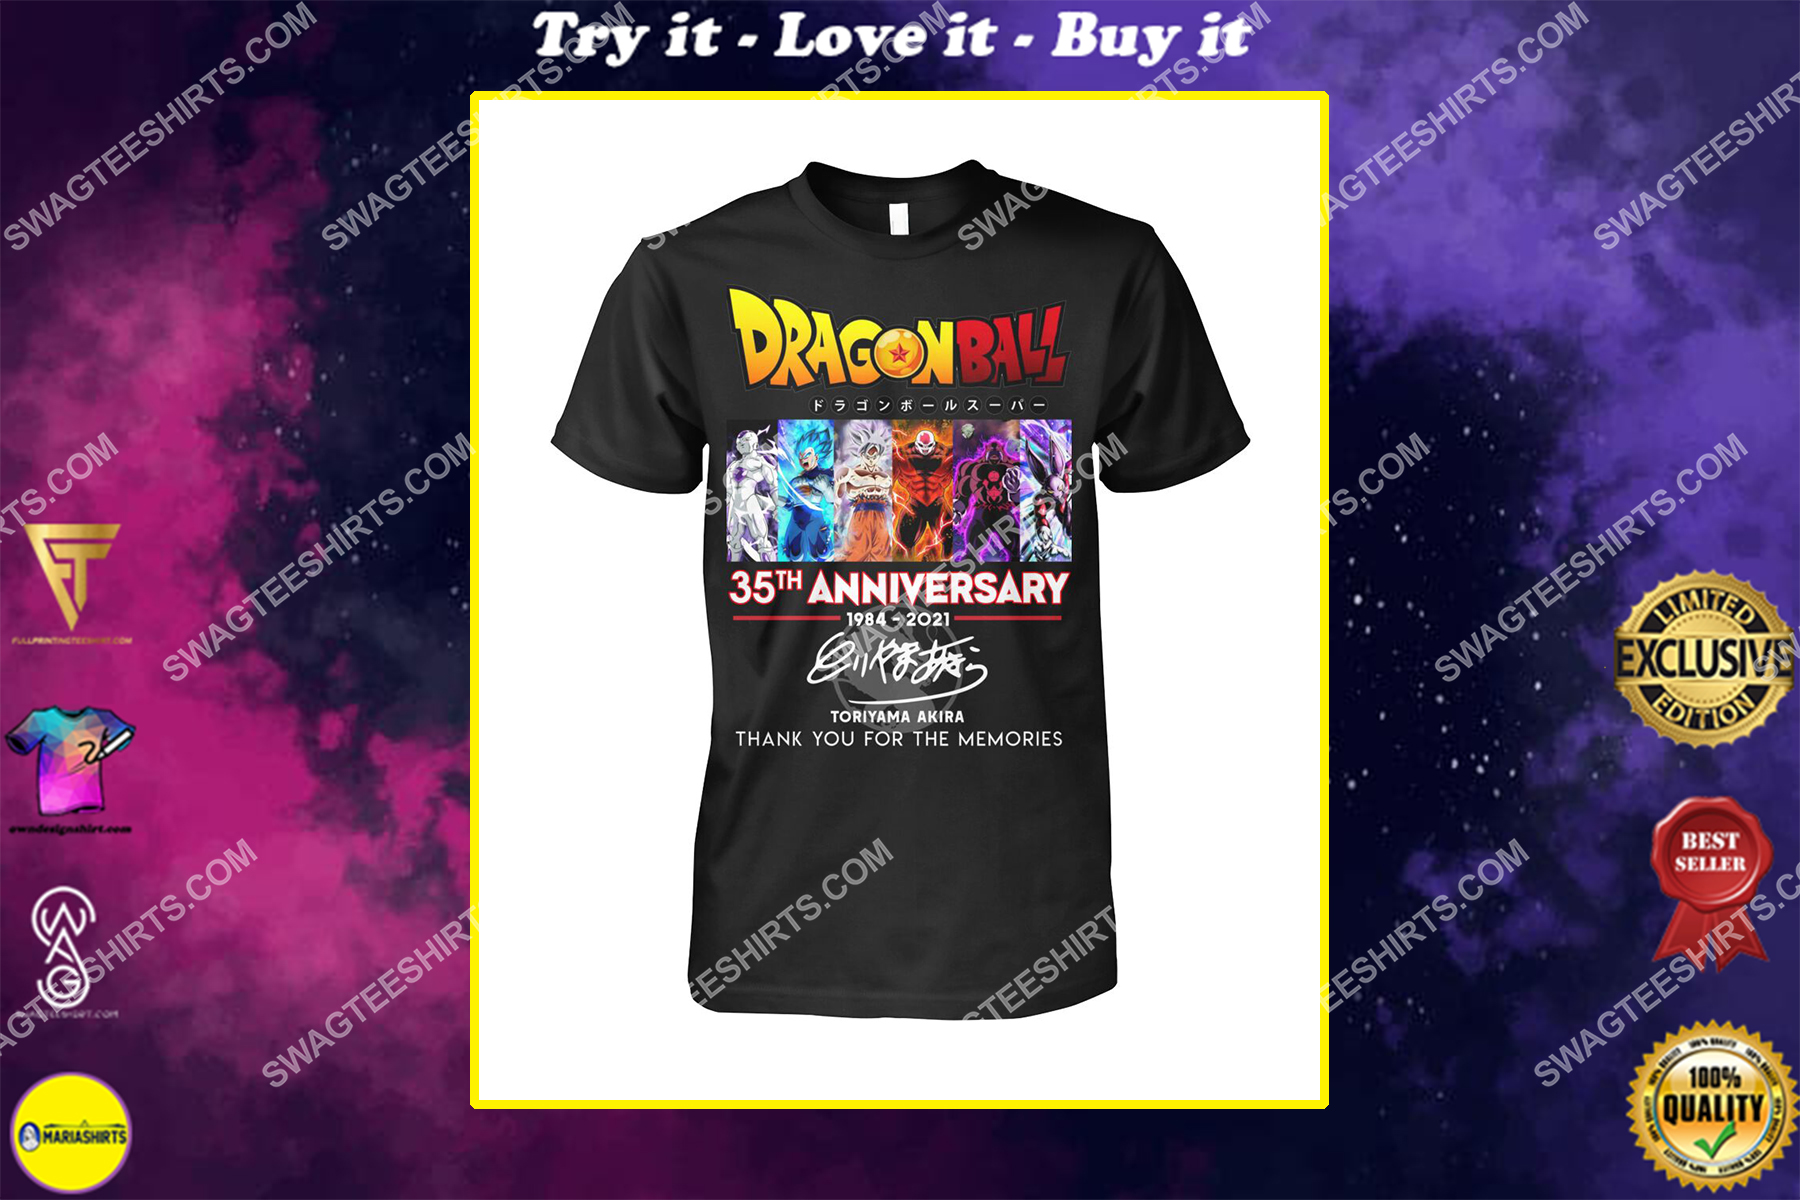 dragon ball z 35th anniversary thank you for memories signatures shirt